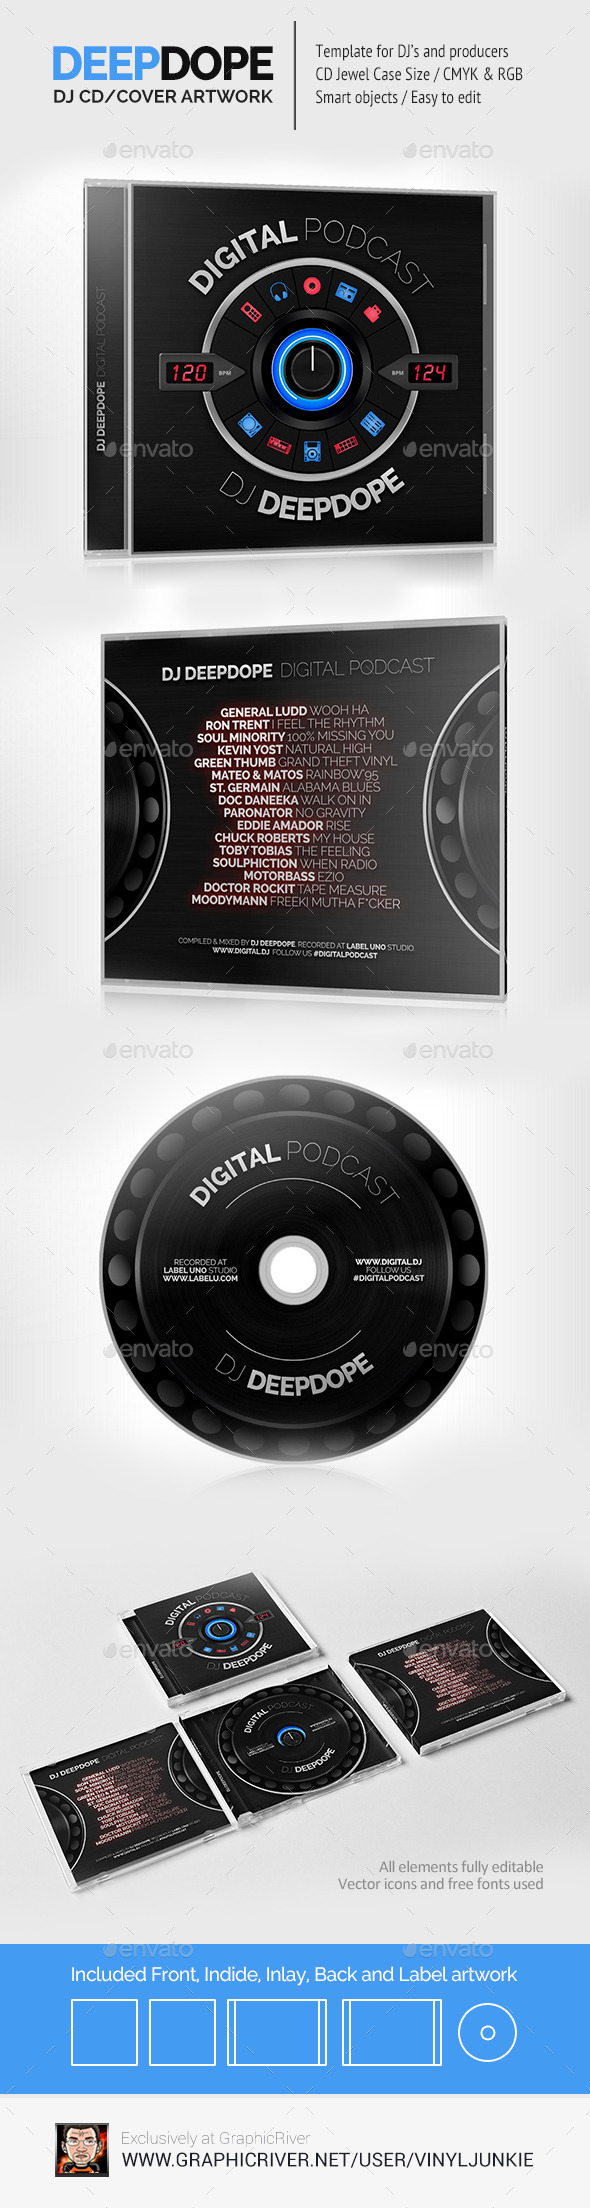 DeepDope DJ Mix CD Cover Artwork PSD